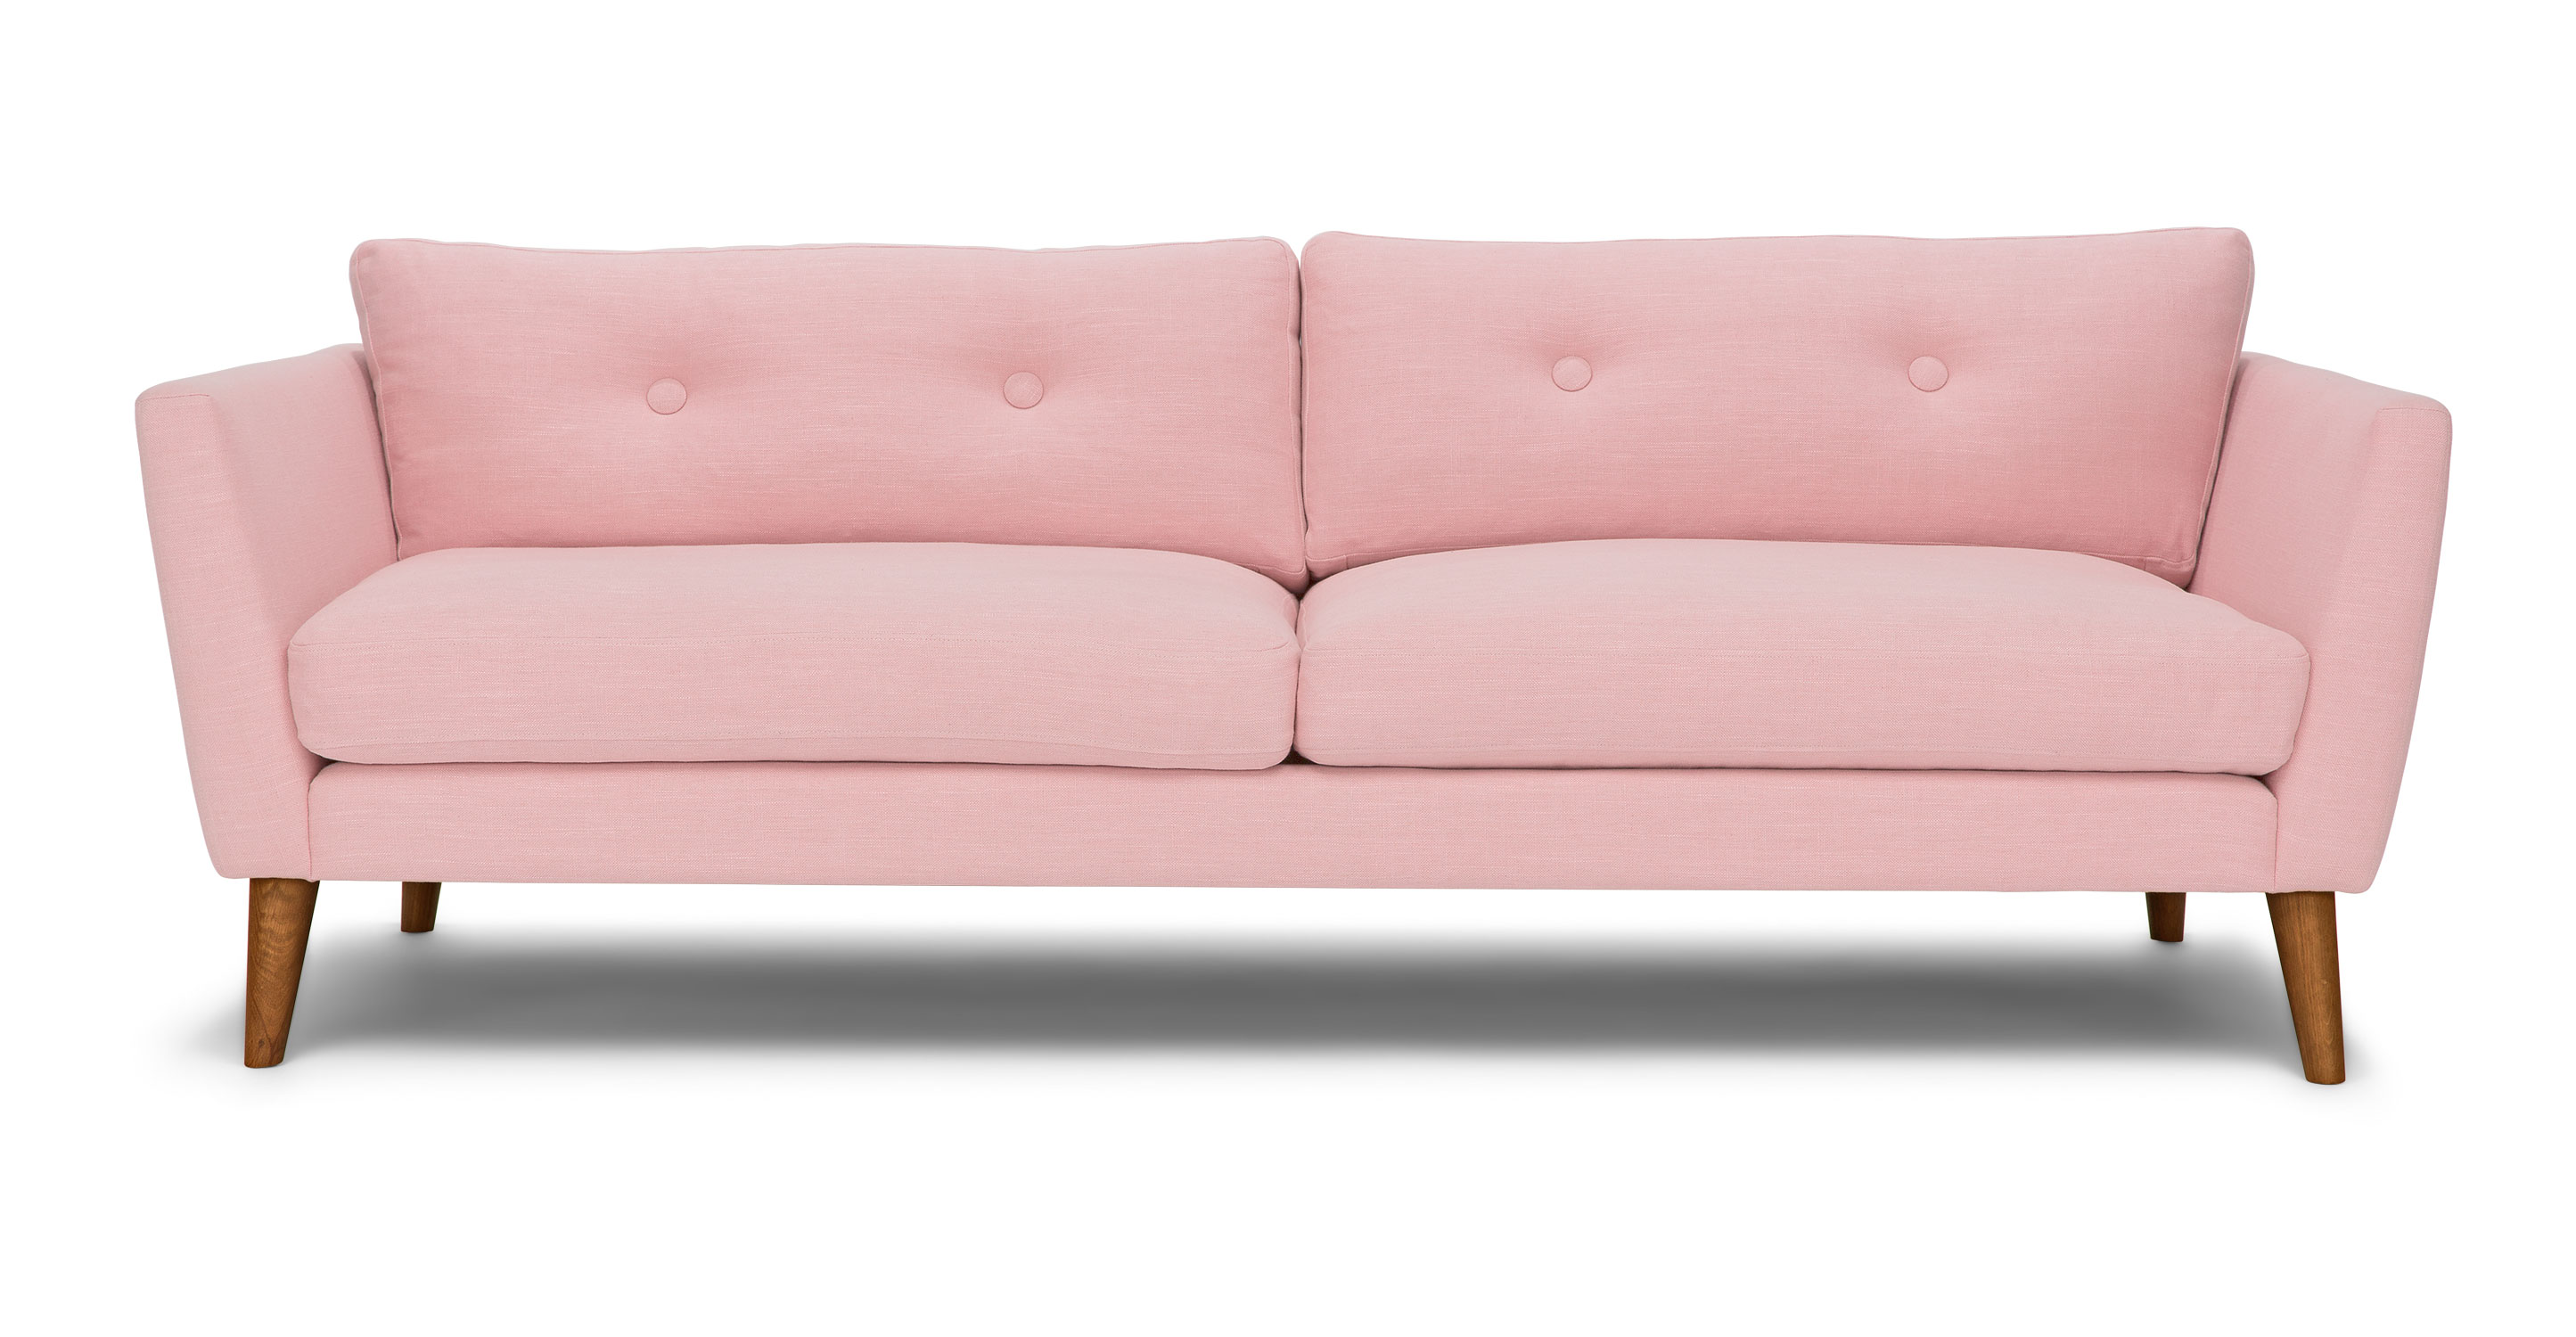 Couch Furniture Emil Quartz Rose Sofa Article